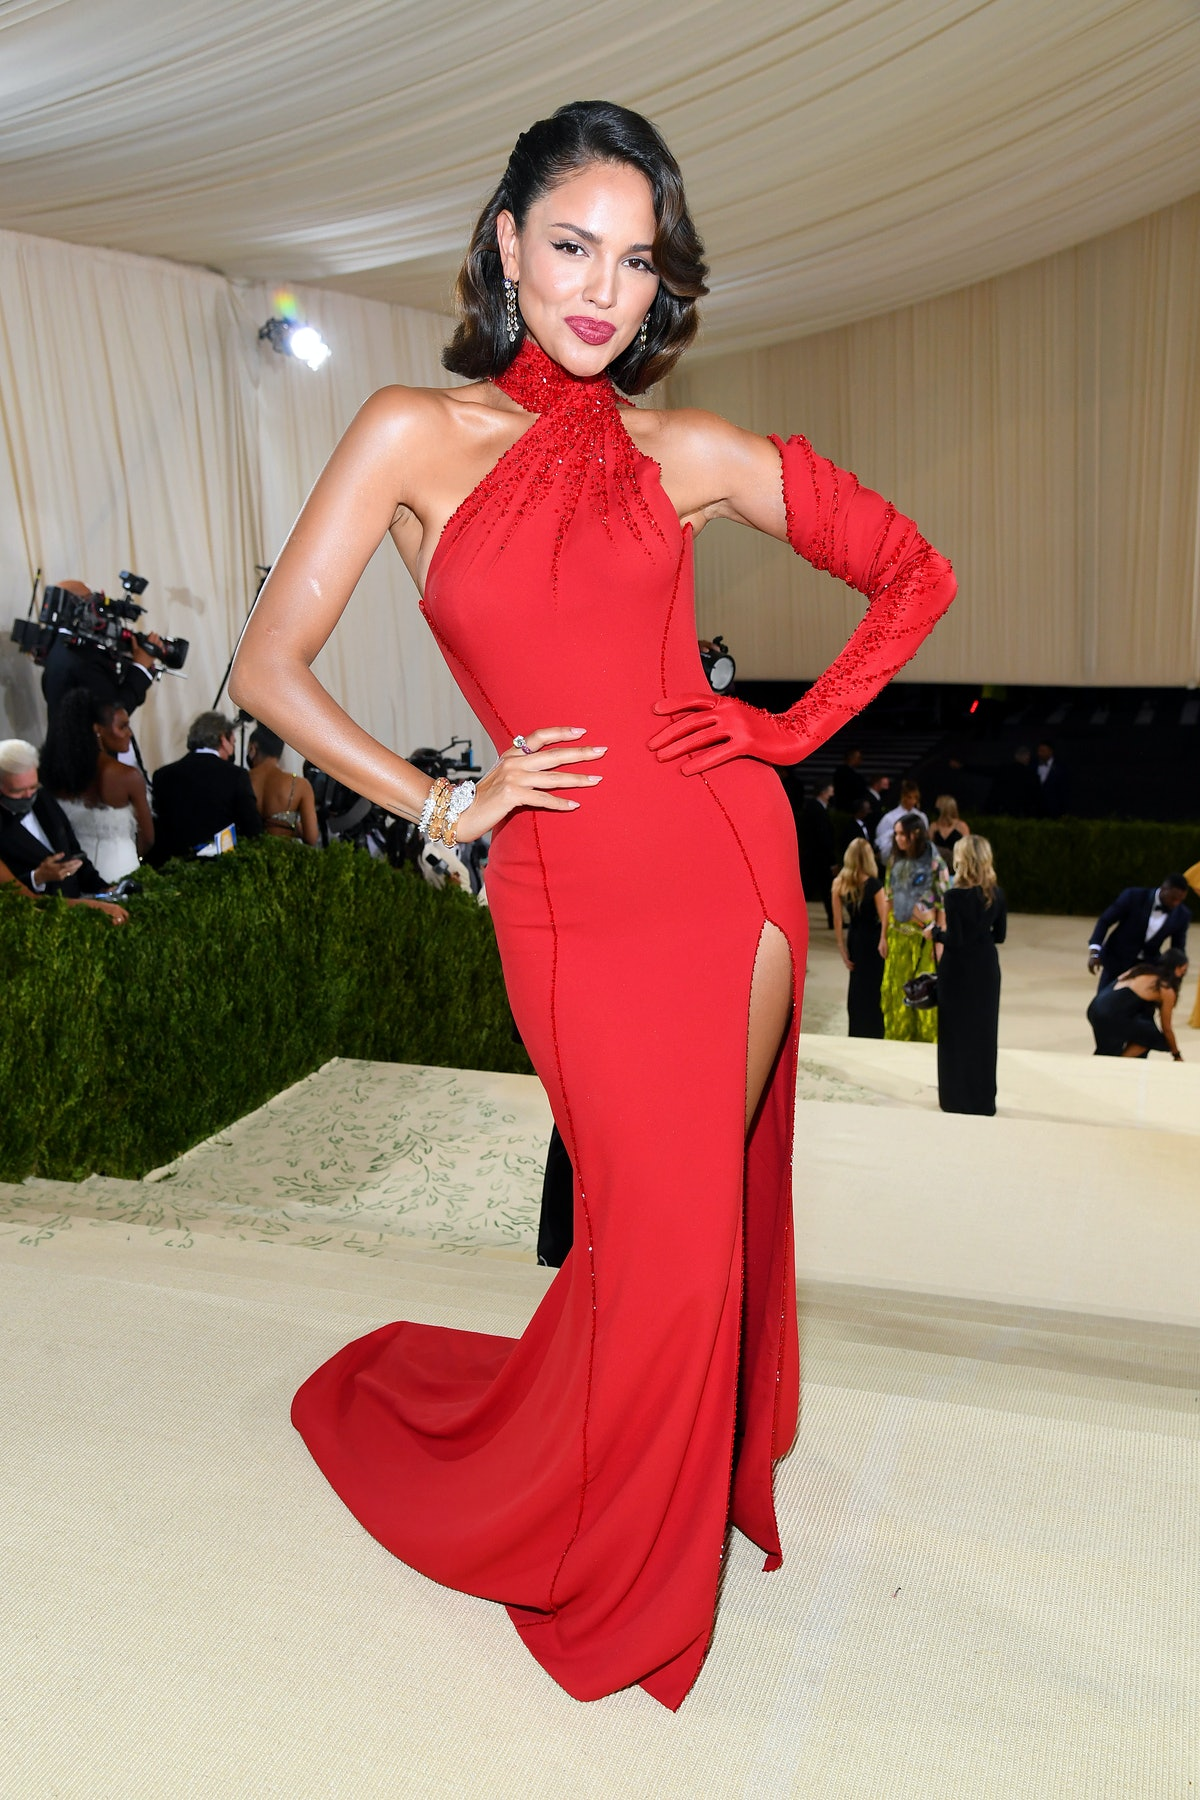 Eiza González attends the The 2021 Met Gala Celebrating In America: A Lexicon Of Fashion at Metropo...